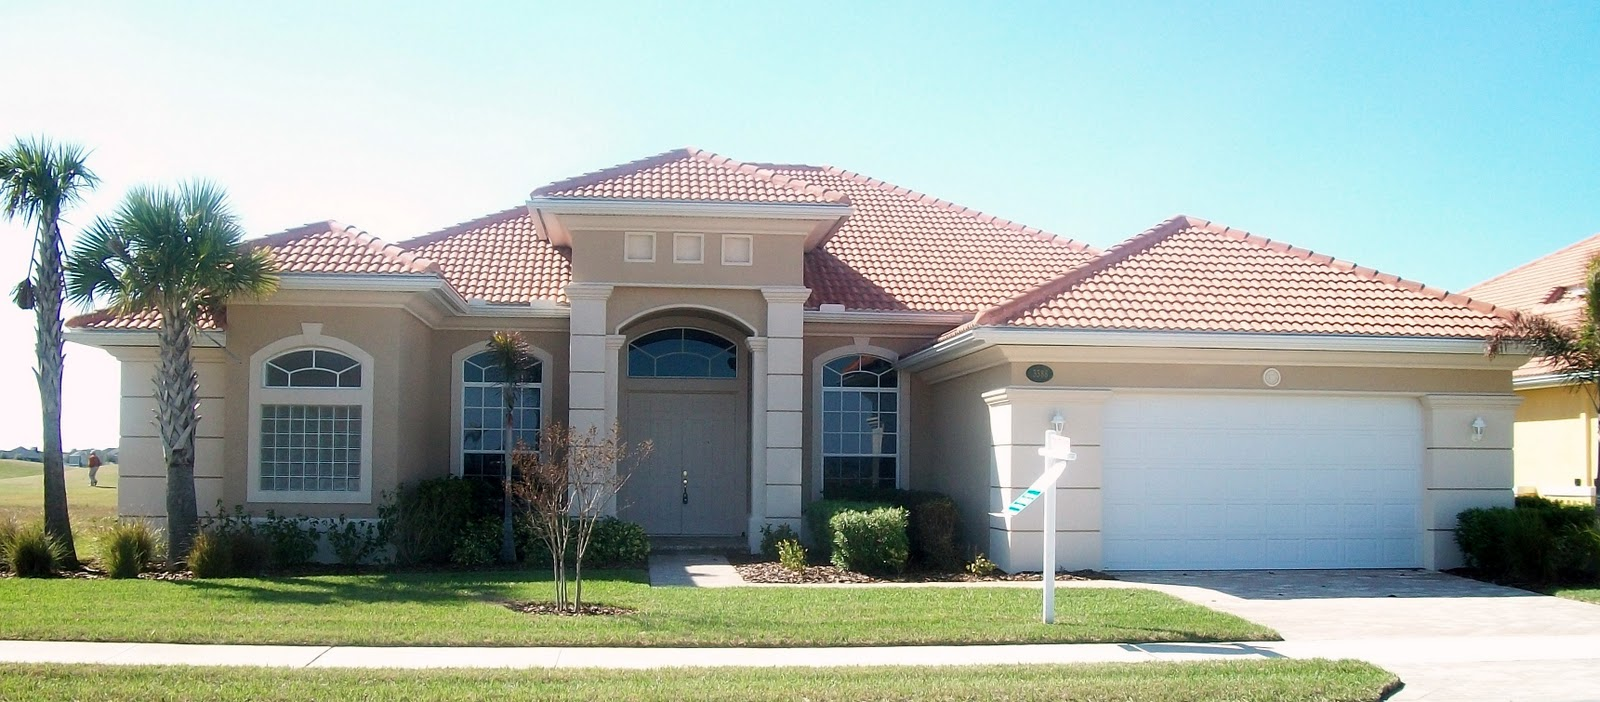 Florida fha loan guidelines home loans for all for Building a house with usda loan